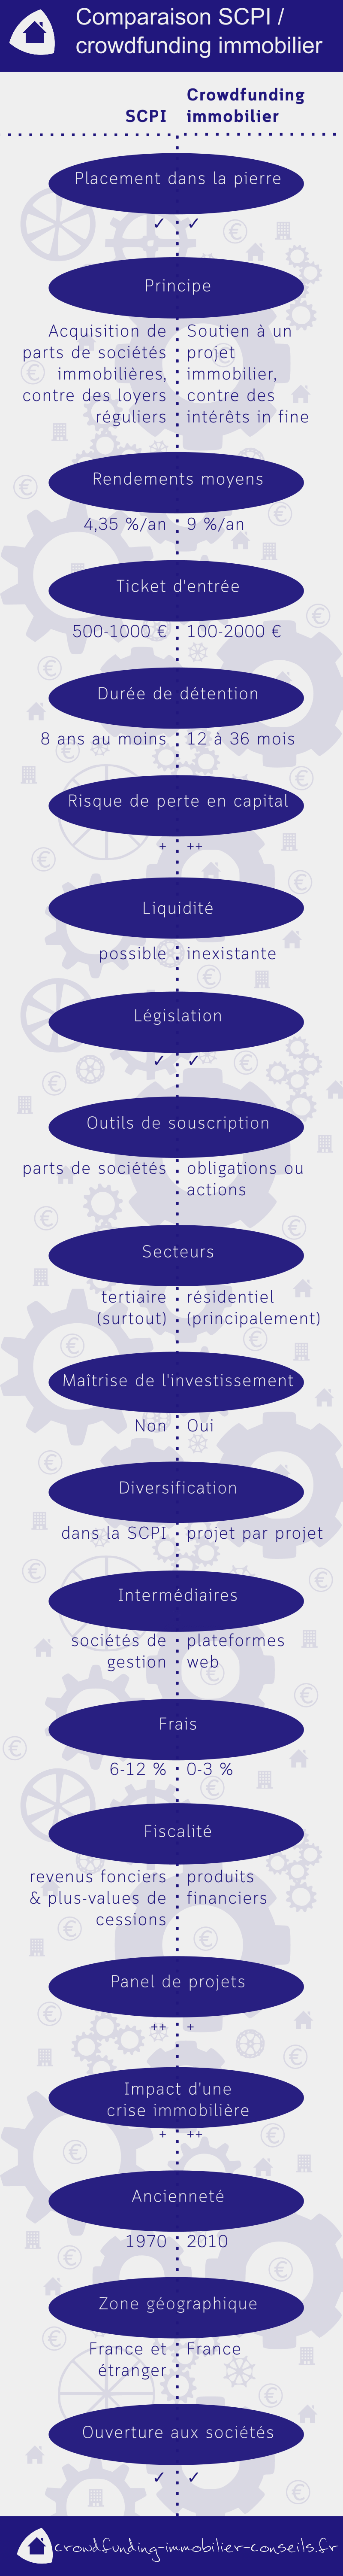 infographie SCPI-crowdfunding-immobilier